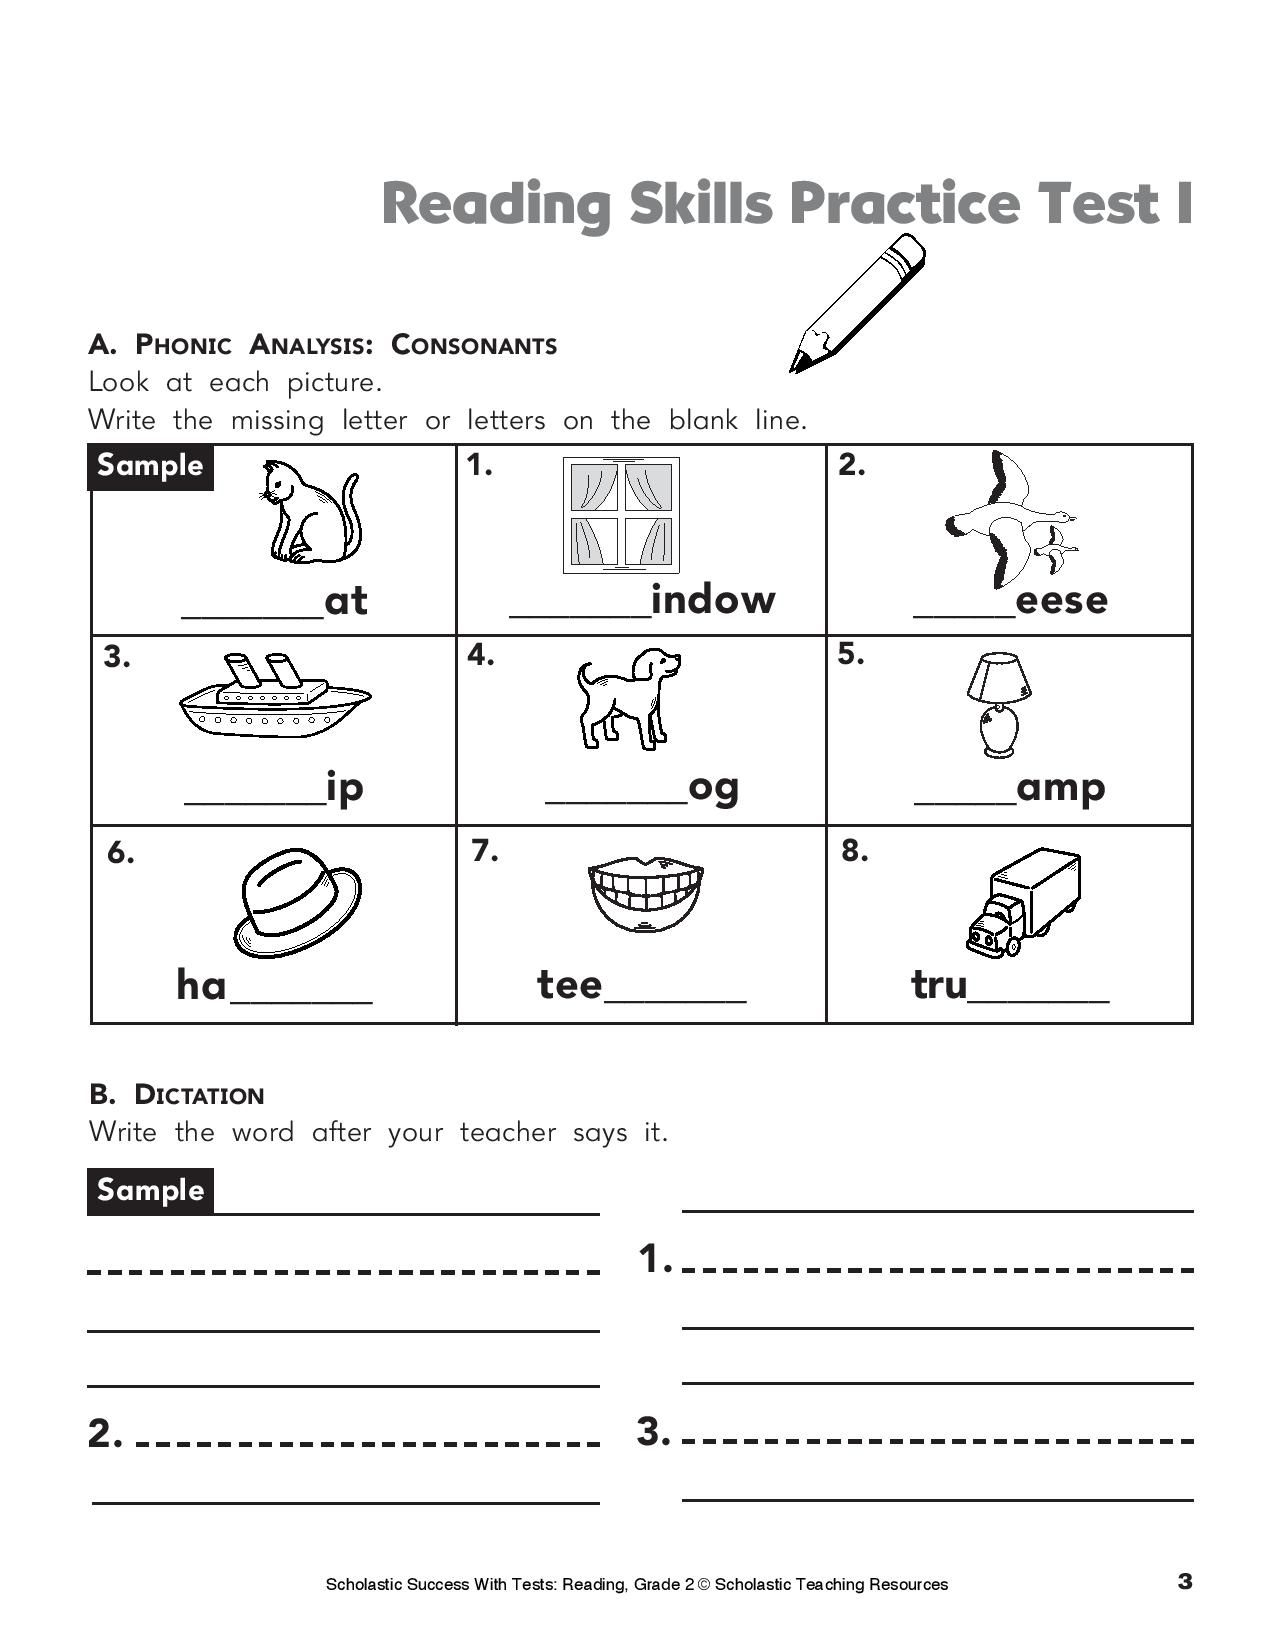 Hooked On Phonics Free Printable Worksheets | Free Printables | Hooked On Phonics Free Printable Worksheets